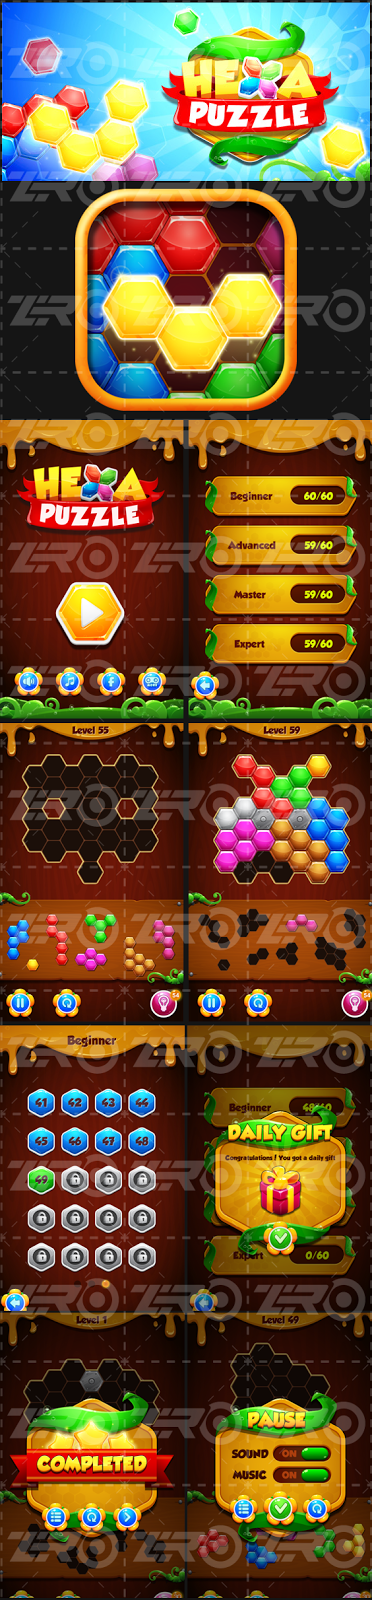 cookie mania game, crush mania game, crush game, mania game, cookie game, candy crush saga game, candy crush game, cookie free game, cookie game free, cookie crush mania game free, cookie crush mania free game, crush mania game free, crush mania free game, game graphic design, game UI design, game graphic UI design, mobile game graphic design, mobile game UI design, mobile game graphic UI design, mobile game graphic and UI design, crush game graphic, cookie crush game graphic, crush game UI design, cookie crush game UI design, crush mania game graphic, crush mania game UI, crush mania game graphic design, crush mania game UI design, cookie crush mania game graphic, cookie crush mania game UI, graphic design, game UI design, game graphic design, candy crush, cookie crush, toy blast 2, cookie yummy, mania legends, pop blast, blast it 2, bubble mania valentine, tap blast, blast monkey, cupcake mania games, cookie legend, jelly splash saga, pop jewel mania, super nanny mania, jelly saga games, block crush mania, cookie cookie clicker, fruit blast, monkey blast, jelly saga candy crush, cookie jam cookie jam, candy block monster, fruit mania 2, candy crush jelly soda saga, cookie swirl c games, sugar blast, yummy blast, cookie smash games, update candy crush jelly saga, mania games for free, jelly bust, cookie crush 2, blossom blast saga update, cube blast, star mania free, social mania, candy connect, cookie boom, candy crush Christmas, candy fever, blast monkeys, cookie clicker 2, like candy crush, cookie mania games, candy crush cookie jam, cookie clicker 3, jelly queen saga, bloom blast saga, fruit bunny mania, cookie clicker collector, games related to candy crush, candy crush bear, free toy blast, kids candy crush, bubble mania free, cookie blast, blossom blast saga king, can candy crush, halloween candy mania, candy crush saga guide, pop mania, cookie jam 2, follow mania, sugar crush jelly, cookie family, cake blast, cookie star 2, viber games, blossom saga blast, blossom mania, jelly candy crush saga, fruit candy crush, cookie jam free game, candy jelly crush saga, candy crush theme, cookie cooking games, jewel mania free, cookie farm, the new candy crush, fish mania game, candy frozen mania, cookie tapper, blossom blast saga free, go to candy crush, okay google candy crush, block puzzle mania 2016, candy crush original game, pastry mania, juice blast, candy legend, candy crush jelly soda, candy jewel, jewel pop mania, candy crush type games, cookie star, free toy blast game, candy blitz, magic gems jewels mania, cookie tap, gem mania, bloom blast, candy crush for kids, candy crush jelly saga cheats, blossom crush mania, jam cookies, free cookie games, new candy games, candy pic, quiz mania, games like candy crush saga, tetris mania, candy crush soda jelly, rock mania, candy crush jam, candy star 2, candy crush jelly saga king, ocean maniafruits mania game, star mania, blast it, photo mania app, game cookies, candy block puzzle, candy crush deluxe, candy crush like games, candy line, candy smash game, yummy blast mania, games like cookie jam, cookie mania 2, jelly queen candy crush, cookie crush jam, cookie jam saga, candy match, frozen frenzy mania, block blast, charm mania, all candy games, garden mania 2, candy jam blast, cookie jam free, garden mania 3, crash mania, toy crush, candy crush candy crush candy crush, the cookie game, balloon mania, cookie blast 2, candy crush original, candy crush 3, new candy crush saga, candy sweet blast, candy deluxe, yummy mania, candy candy crush, candy splash, cookie click, gummy blast, candy pics, amazing candy, candy crush saga facebook, candy crush saga on facebook, jelly blast free game, jewel blast mania, candy mania blast, blossom blast saga game, cute candy blast, candy jelly crush, cookie crush saga, cookie clicker, free games cookie jam, jelly blast saga, candy crush sugar, candy valley, magic mania, candy island, cookie crush games, candy dash, candy crush 2016, candy block, catch the candy, candy café, open candy crush, jelly splash, candy boom, color mania, cupcake mania, candy crush s, candy frenzy 3, baby mania, free games like candy crush, sweet candy games, find candy crush, forest mania, candy crazy, games mania, candy fantasy, garden mania, candy photos, candy crush saga king, candy crush jelly saga game, candy shoot, candy hero, candy crush new, blast games, cookies app, candy crush saga update, candy crush saga 2, free cookie jam game, candy crush the game, all candy, jelly crush mania, update candy crush saga, candy crunch game, blossom blast, jelly blast mania, candy smash, fruit mania, candy photo, jewel mania game, nanny mania game, cookie smash, candy journey, candy c, all candy crush games, jelly mania, candy cr, candy mania free game, candy frenzy game, free cookie jam, candy mania, fruit crush game, candy, candy jelly saga, photo candy, cookie mania, mania games, candy crush jelly queen, sweet candy mania, sweet cookie blast, crazy candy, jewel mania, toy blast game, ultimate jewel, solitaire mania, candy crush online, candy crush saga jelly, video mania, new cand, candy frenzy, candy crush saga play online, jewel blast, saga candy crush, download candy crush jelly, jelly blast candy trip, candy star, candy crush android, games similar to candy crush, soda candy crush, candy puzzle, nanny mania, tractor mania 2, candy crush saga, jelly crush saga, cookie jam game free, pop candy, bubble mania, candy crush free app, candy jelly, candy crush jelly saga, jelly saga, jelly candy crush, candy crush saga free game, update candy crush, candy crush new game, candy crush jelly game, saga games free, candy crush mania, free candy games, bubble mania game, jelly crush, candy saga, candy crush for free, cake mania game, cookie jam, bubble blast, bubble blast 2, candy crush jelly, fruit splash game, candy crush candy crush, play candy crush saga, install candy crush saga, play candy crush, cake mania free, block mania, cake mania 2, candy games free, candy crush 2, cookie jam cheats, candy crush game app, candy crush play, fruit crush, candy crush free, cake mania, candy crush saga game, candy crush jelly download, games like candy crush, games candy, farm mania, cookie crush, new candy crush game, game candy, new candy crush, candy crush saga free, free candy crush, puzzle mania, photo mania, candy crunch, free games candy crush, free candy crush saga, candy crush game, cookie jam game, candy crush, free candy, download candy crush saga, fruit candy, game candy crush, candy crush saga app, candy crush saga download, jelly candy, download candy crush, candy crush free games, free candy crush games, cookie games, candy games, candy crush download, candy crush app, candy crush games free, zombie blast, blossom blast game, candy blast game, jelly blast game, candy mania game, jelly blast, candy blast, candy blast mania, blossom blast saga, app design software , app designer, design an app, design apps, mobile app design, how to design an app, prototyping tools, ui design tools, app prototyping, android ui design tool, app design, app ui design, ux design tools, mobile app prototyping, scratch and sketch, mobile app designer, app prototype, ui design tutorial, learn to sketch, sketch software, app design course, designer app, how to design apps, how to design a app, best ui design, sketch web design, mobile app mockup, ui prototyping, sketch prototyping, free prototyping tools, ui prototyping tools, design mobile app, app prototype maker, sketch wireframe, mobile prototyping, scratch app, ux design tutorials, wireframe design tool, best mobile app design, how do you design an app, ios prototyping, how to design mobile apps, ui mockup tools, best app design, sketch program, sketch tutorial, how to sketch, design sketch, sketch tool, sketch design software, sketch file, sketch ui, mockup tool free, best design apps, learn how to sketch, design apps for mac, sketch app, how to draw apps, ui sketch, sketch mac, sketch 3 tutorial, designer sketches, sketch for mac, mac sketch, adobe sketch, app sketch, sketch ui kit, sketch design, ui online mobile app, drawing app for mac, sketch , free sketch, android sketch app, learn sketching, sketch app windows, sketch coupon, sketch free, sketch 3 coupon, sketching tutorials for beginners, sketch app for iphone, sketch ux, ios drawing app, mac drawing app, mobile sketch, sketch work, drawing app mac, ui kit sketch, how to use sketch, sketch app templates, jewels saga, jewel pop games, jewel pop mania, jewel mash, jewel mania game, jewel games, game jewel, jewel mash game, jewel star game, jewel saga game, jewels pop, candy blast mania, jawel pop, gems journey, free match 3 games no time limit, jewel pop mania game, free jewel games, jewel puzzle games, jewel mania free, jewel puzzle, game collection, block hexa puzzle cheats,